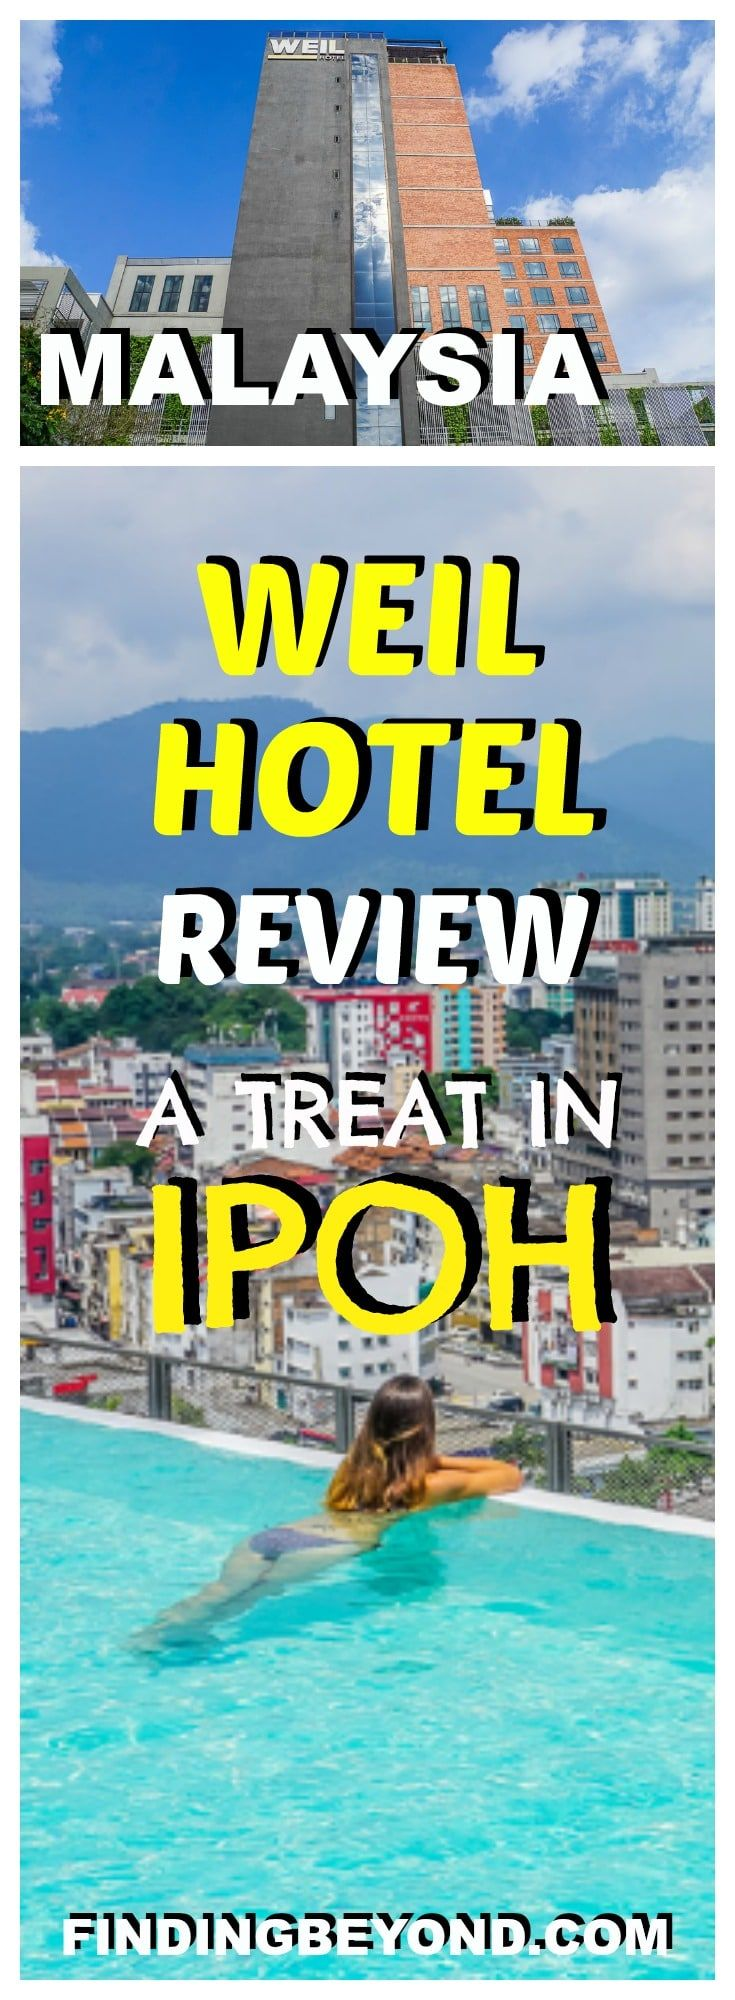 Check out our review of the awesome Weil Hotel in Ipoh. Old Ipoh is considered the new George Town, so now's the time to visit before the crowds arrive!